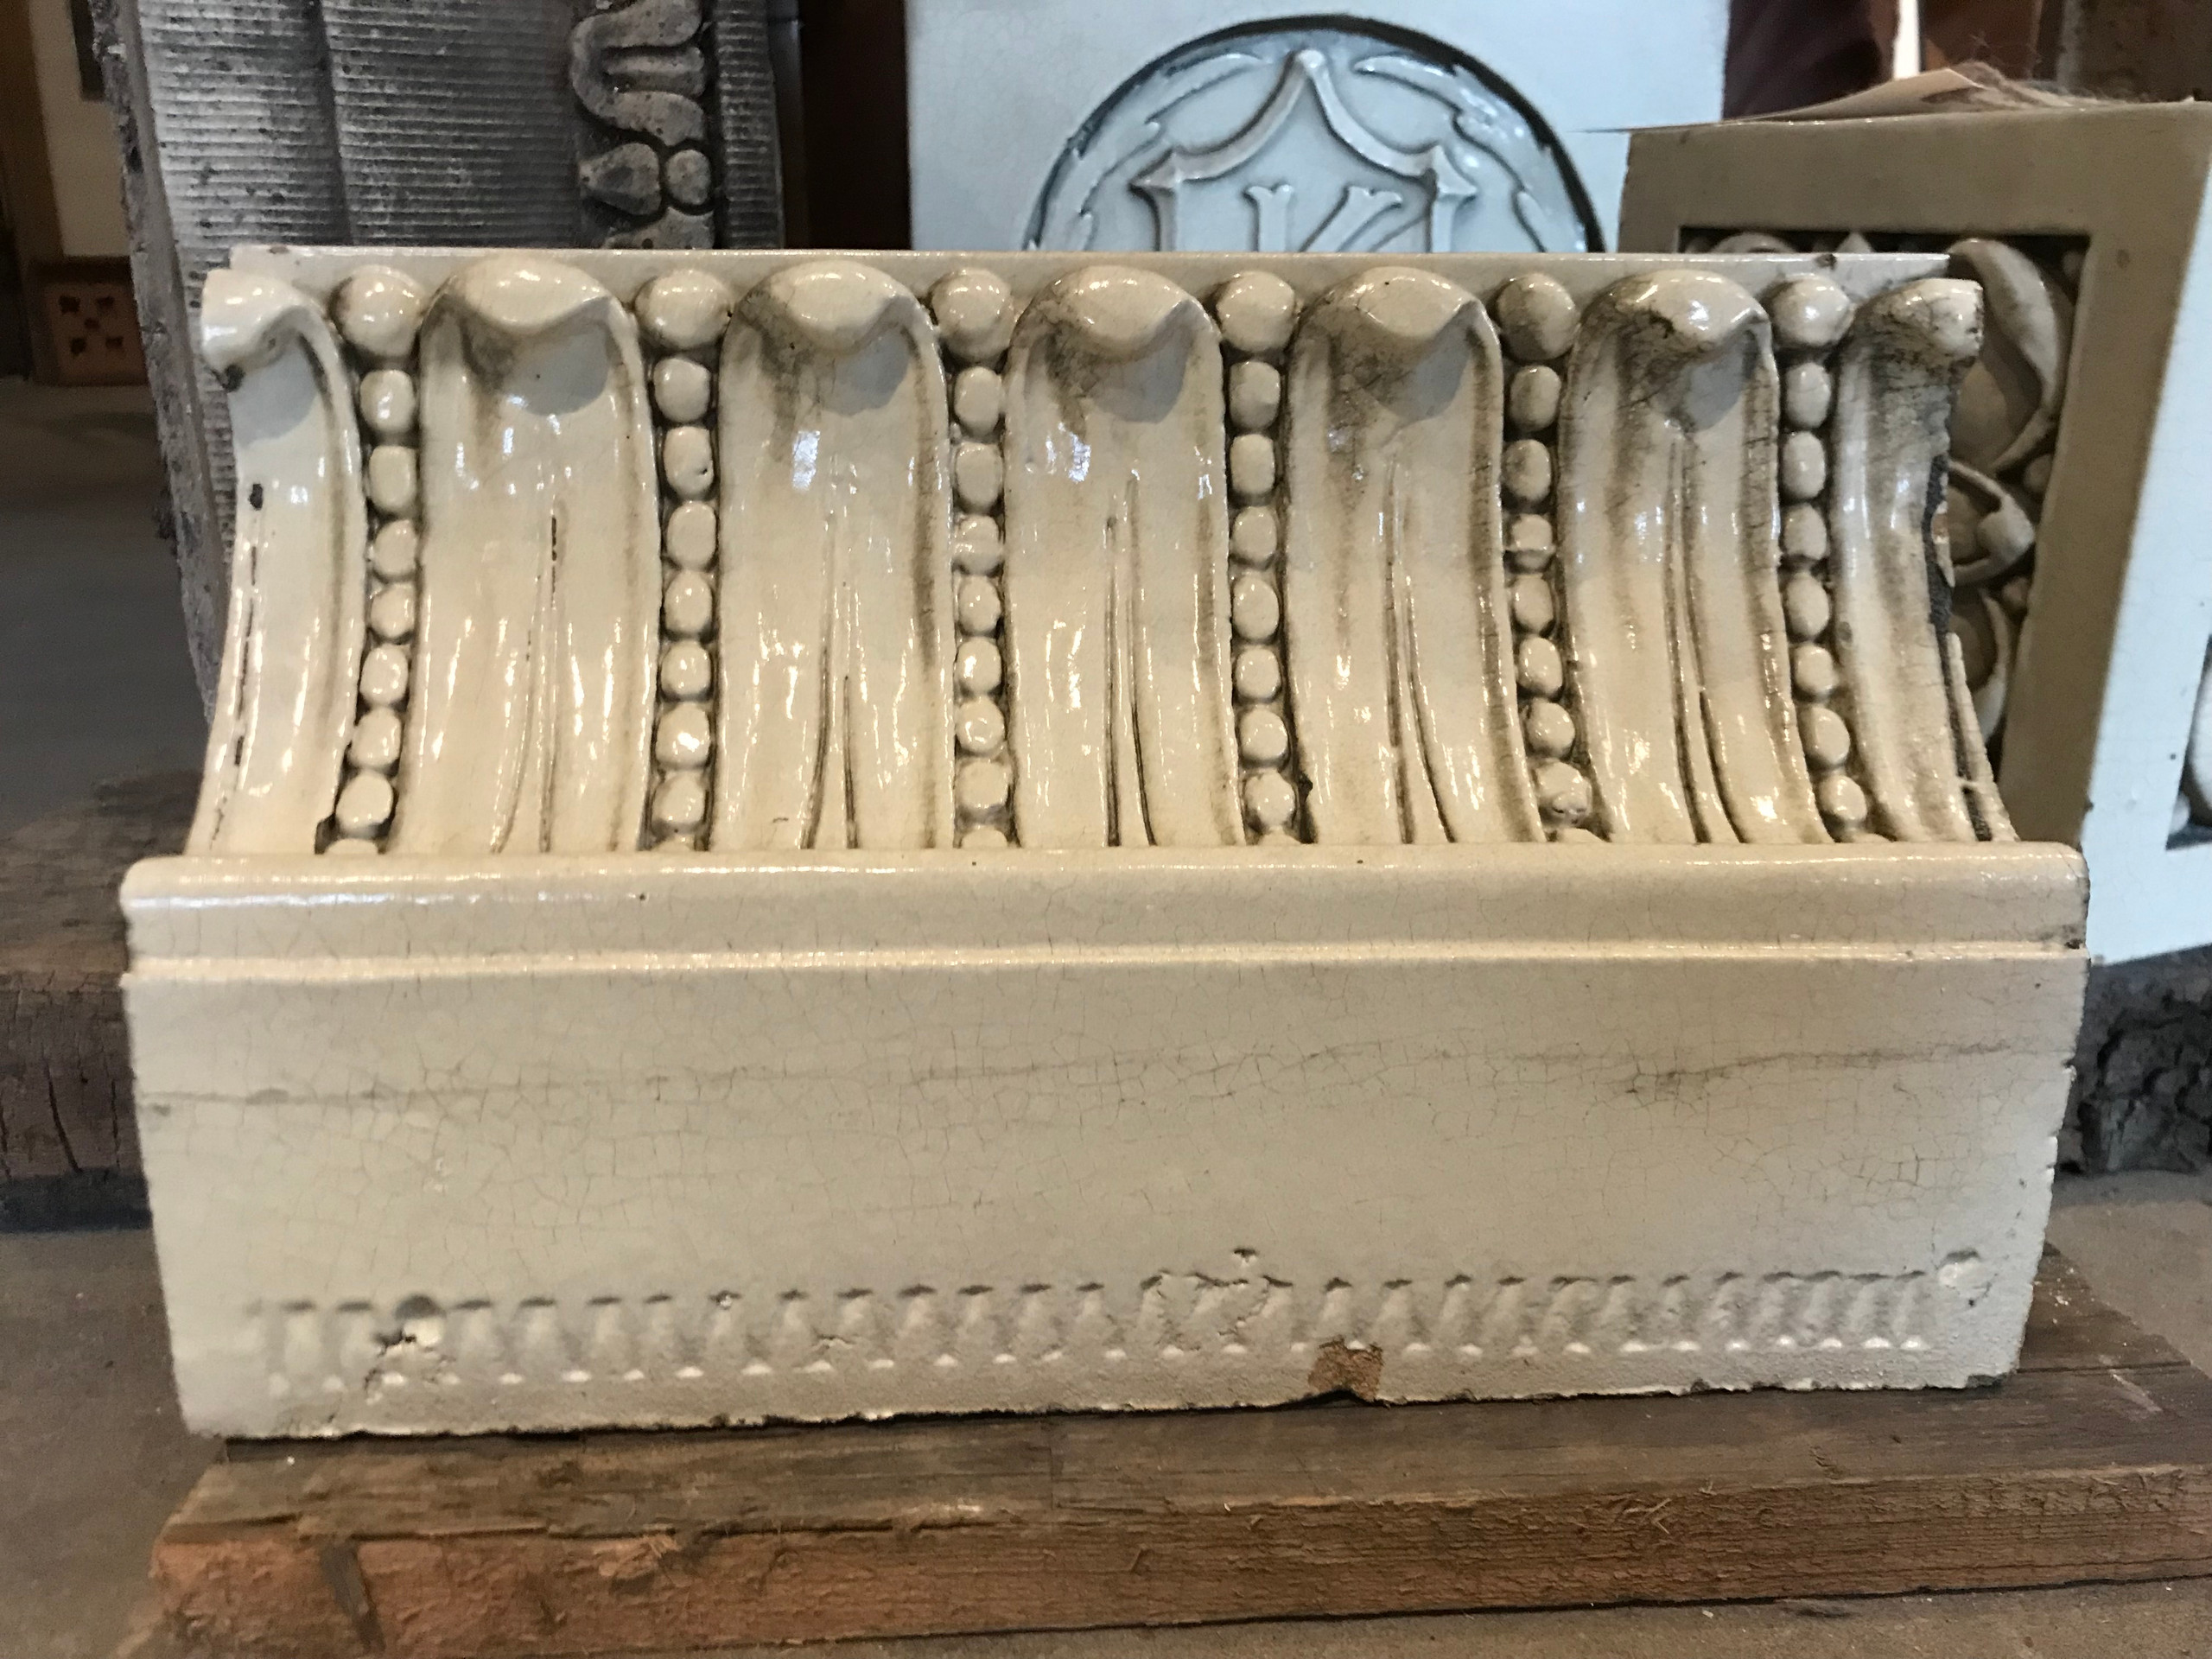 Architectural cornice piece from the Kingsland movie theatre.